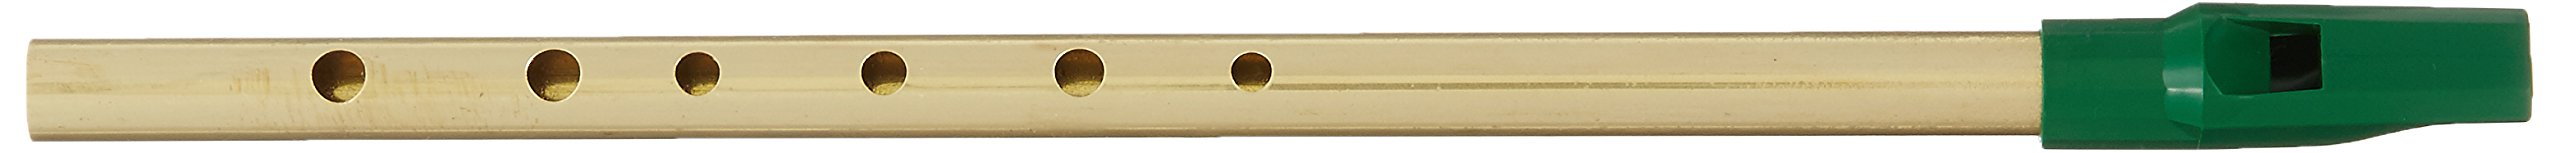 Waltons WM1520 Waltons Whistle Brass D